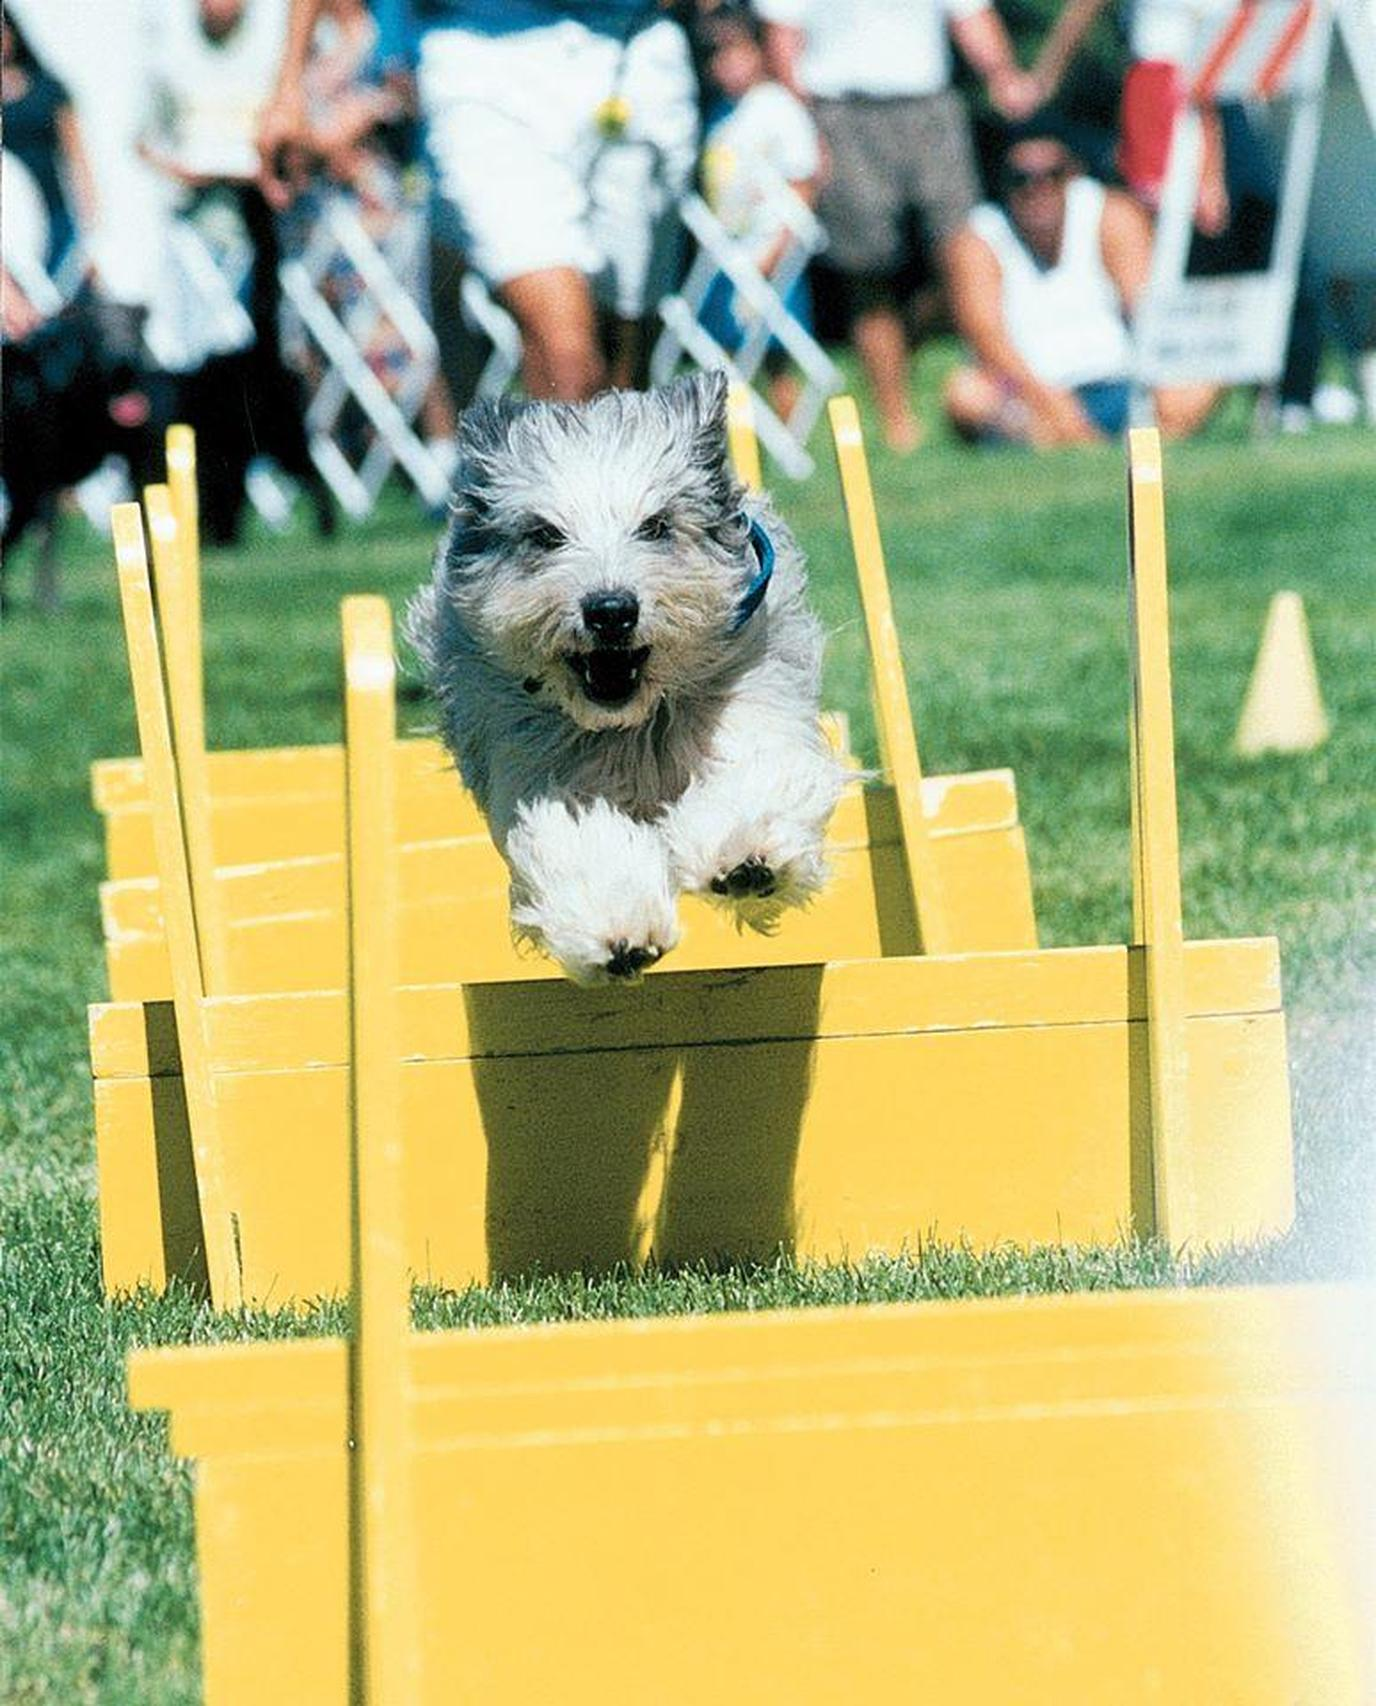 The largest dog festival in the U.S., Bark in the Park will be full of demonstrations and activities